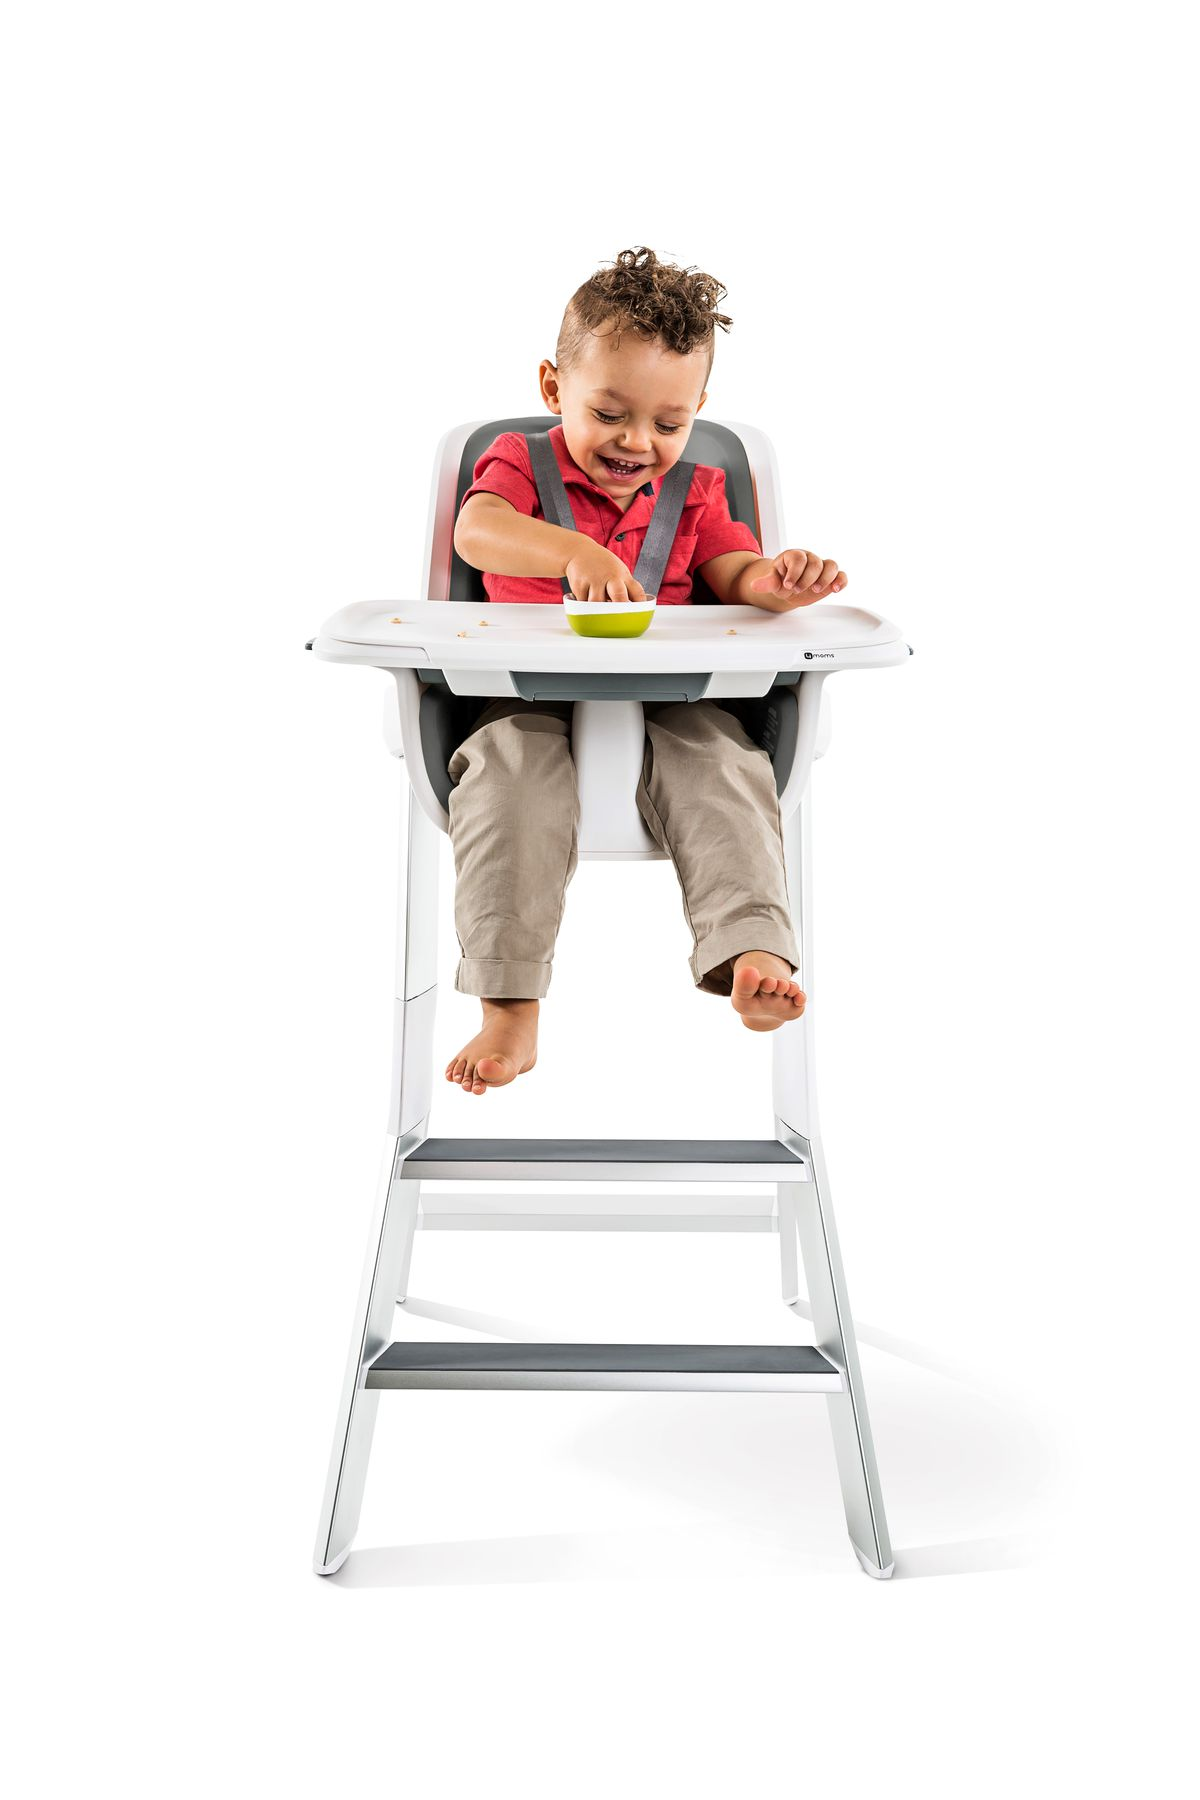 ddf9ba9ee4f This magnetic high chair has some clever features